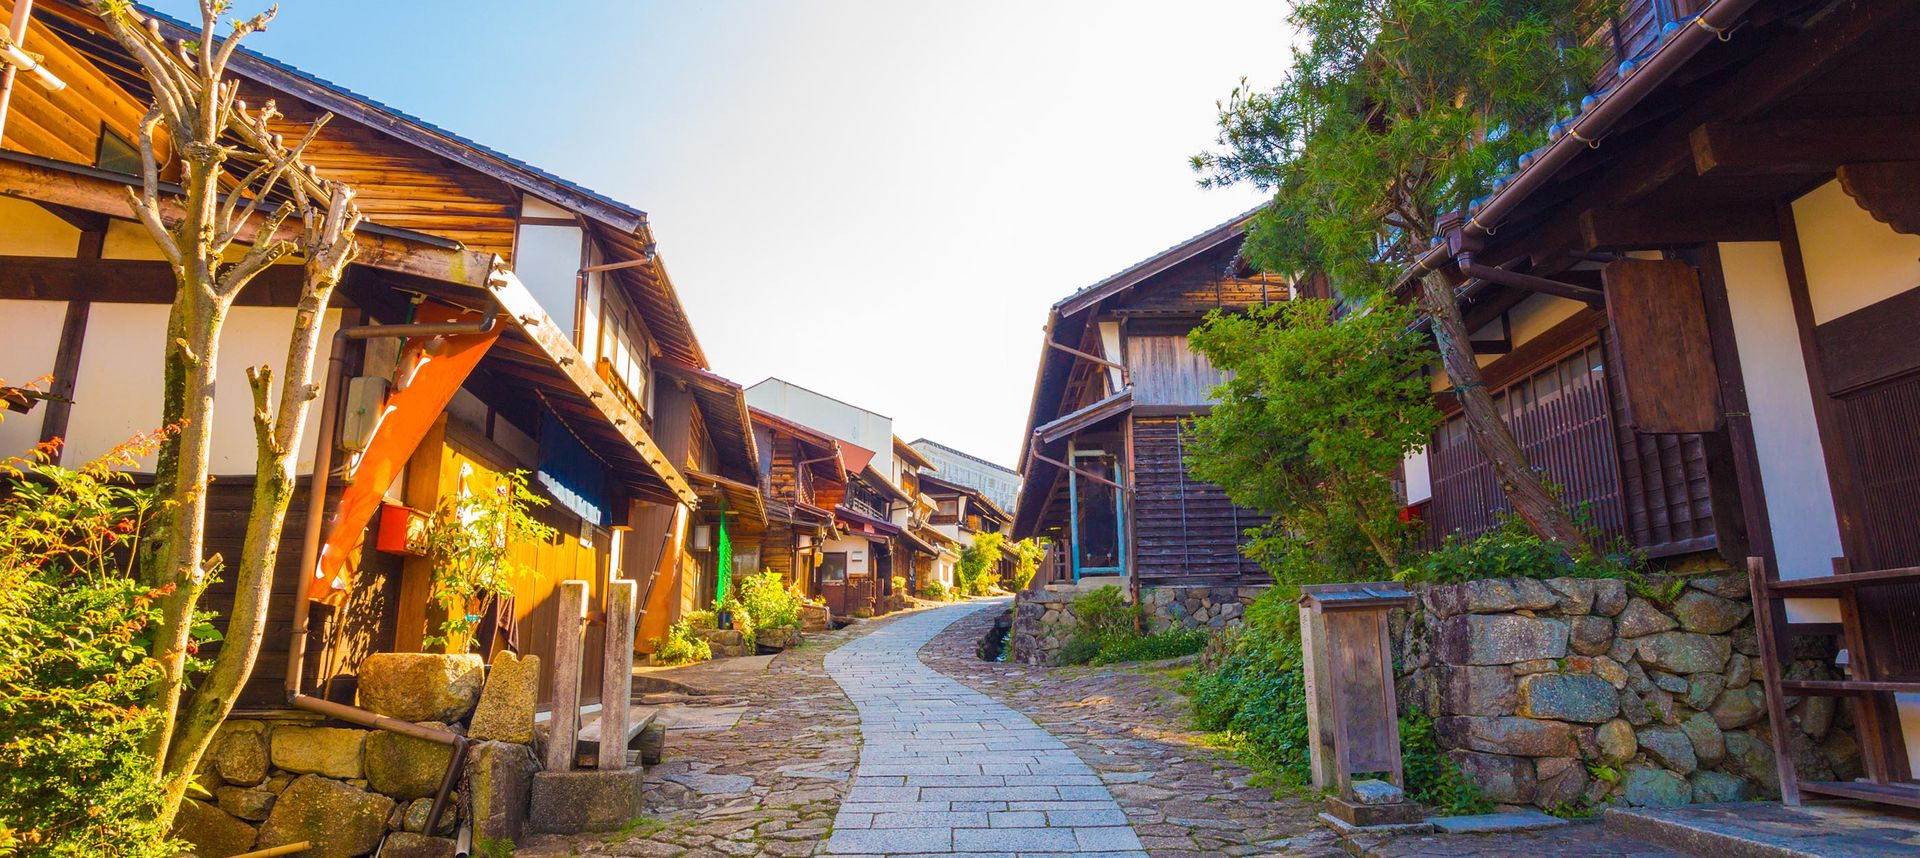 The Nakasendō Trail: Uncovering charming post towns